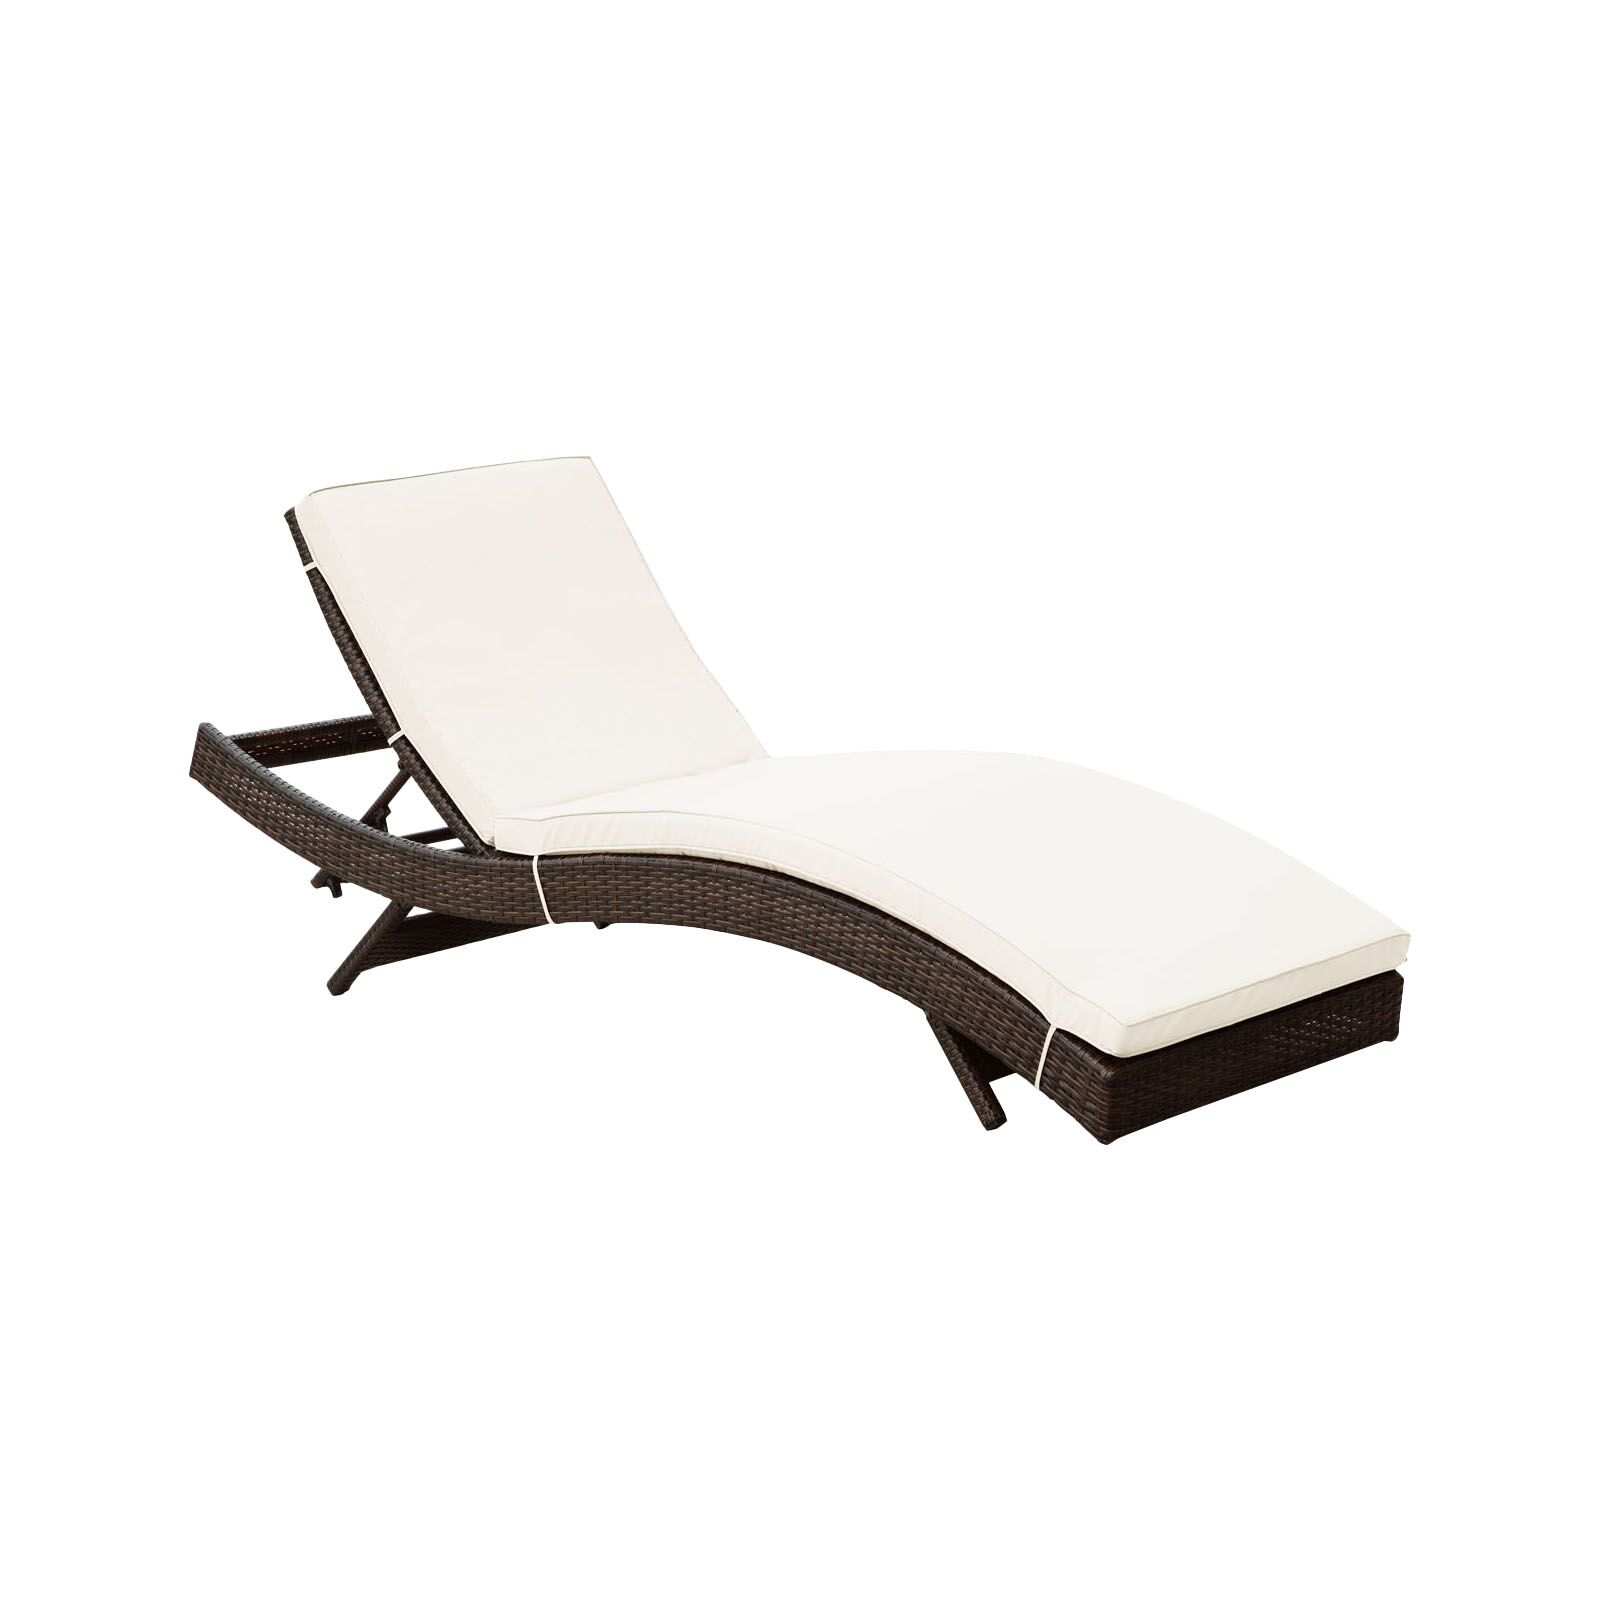 Ludwick Chaise Lounge with Cushion Fabric: White